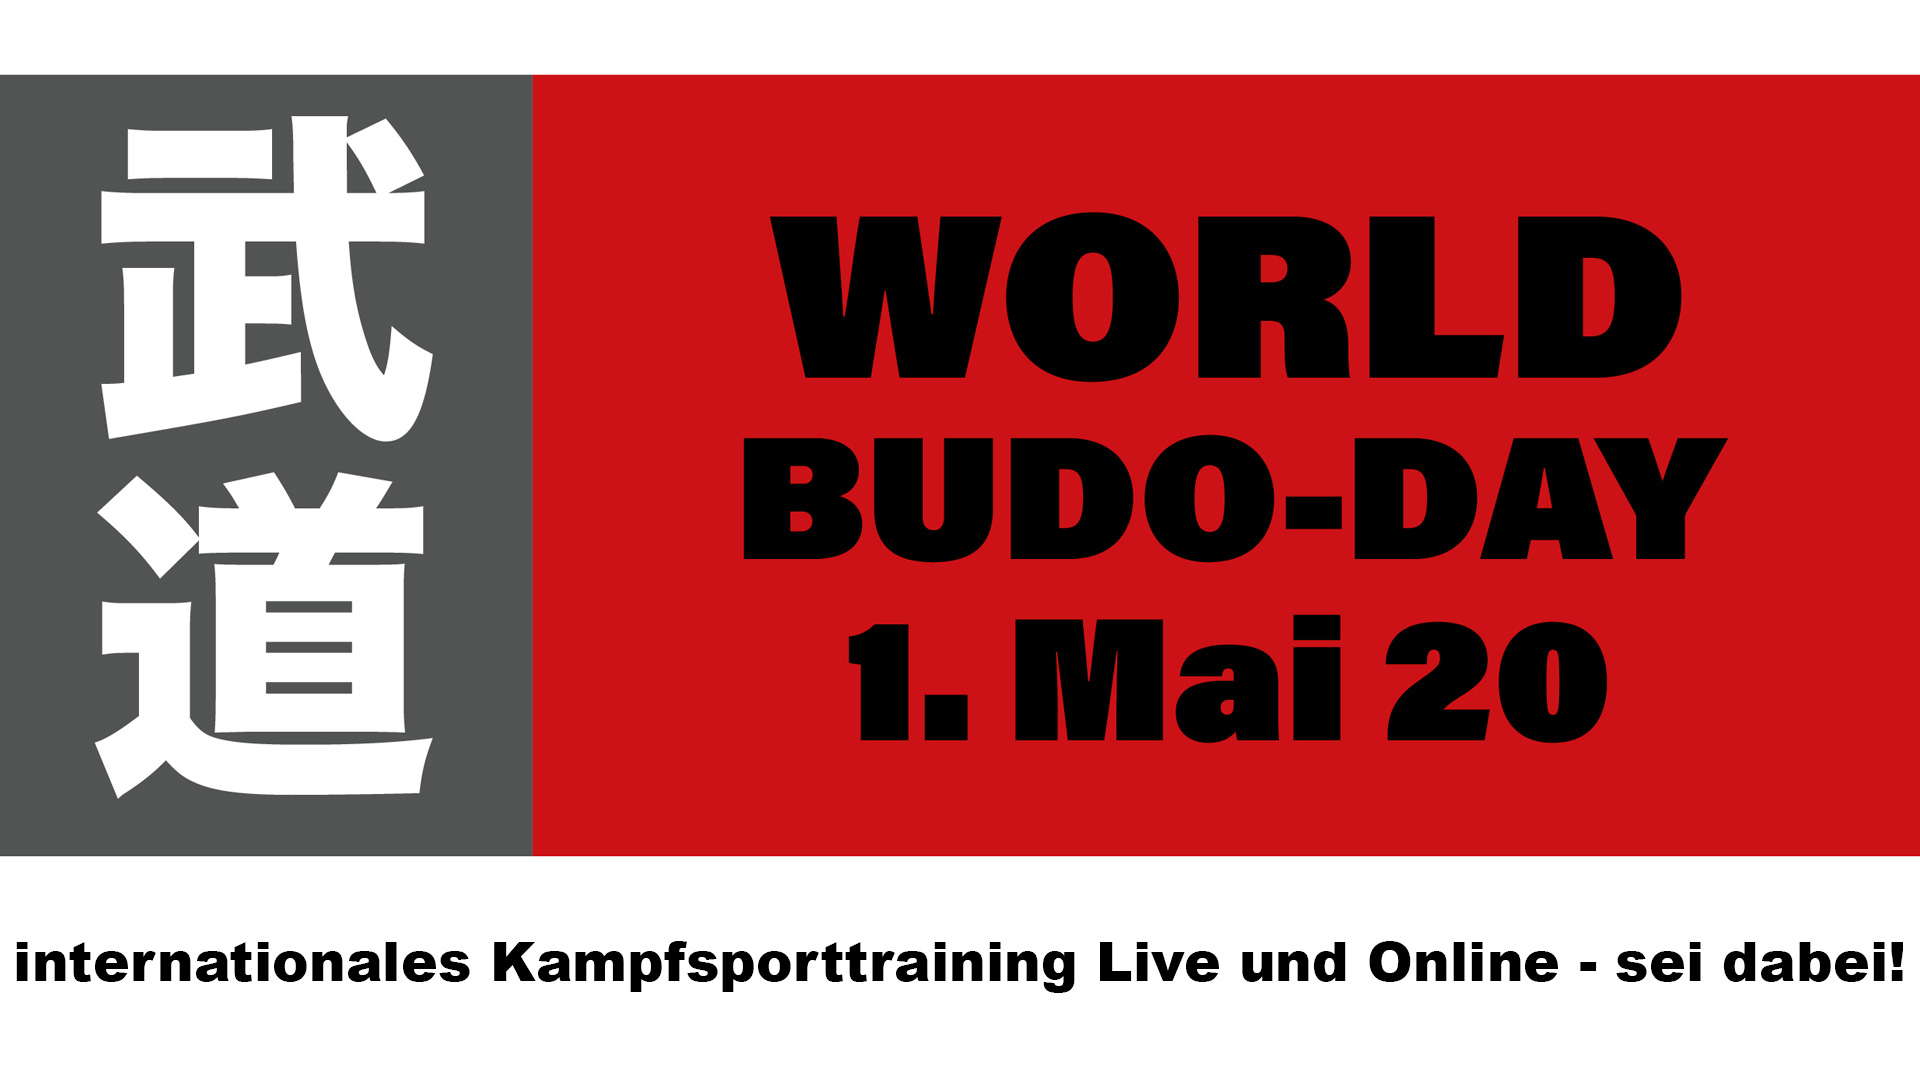 international world budo day, online kampfsporttraining, live und online, mit internationalen spitzensportlern